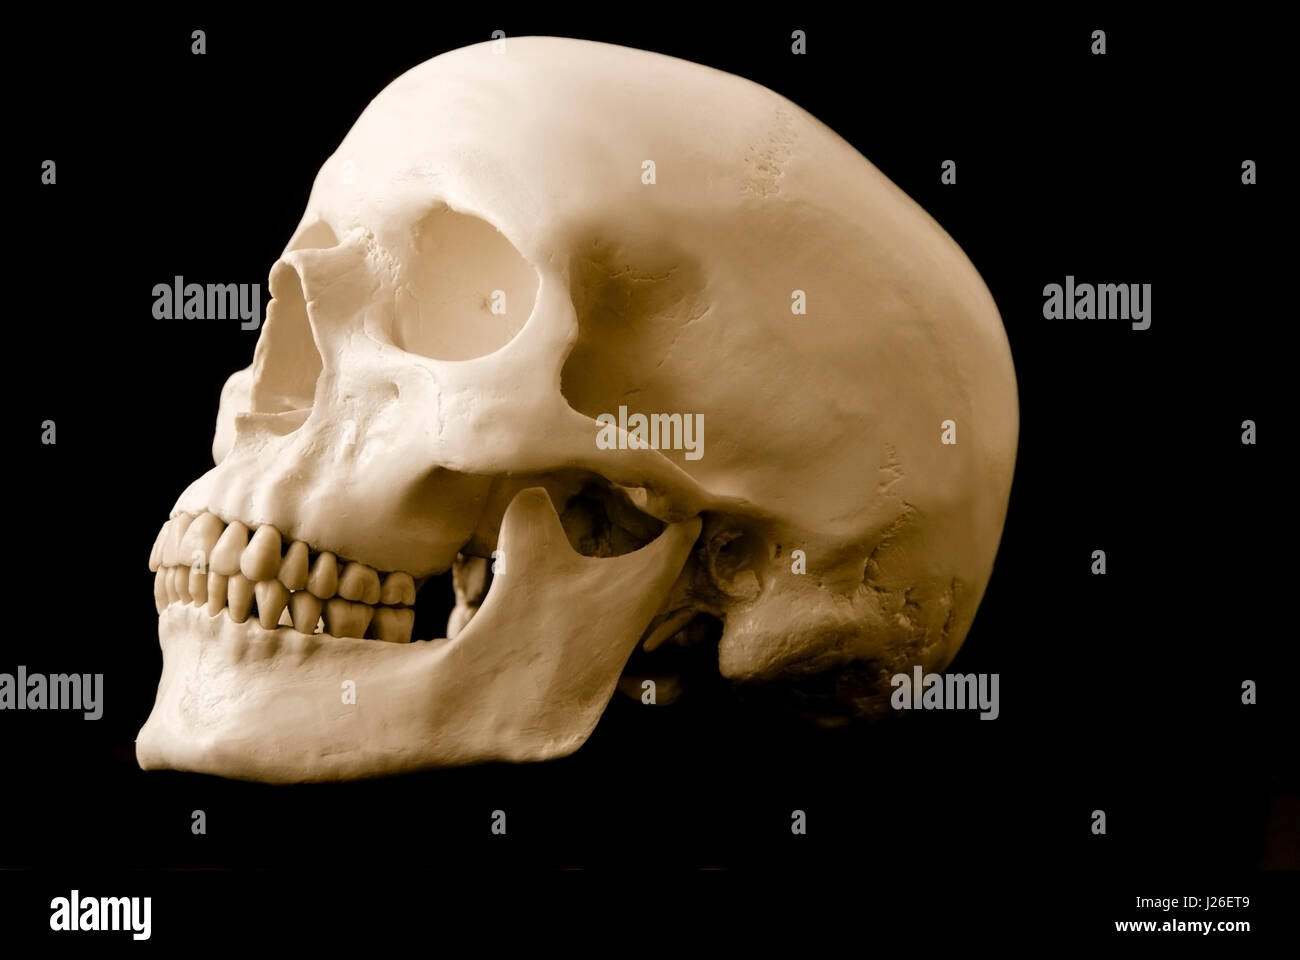 human skull isolated - Stock Image